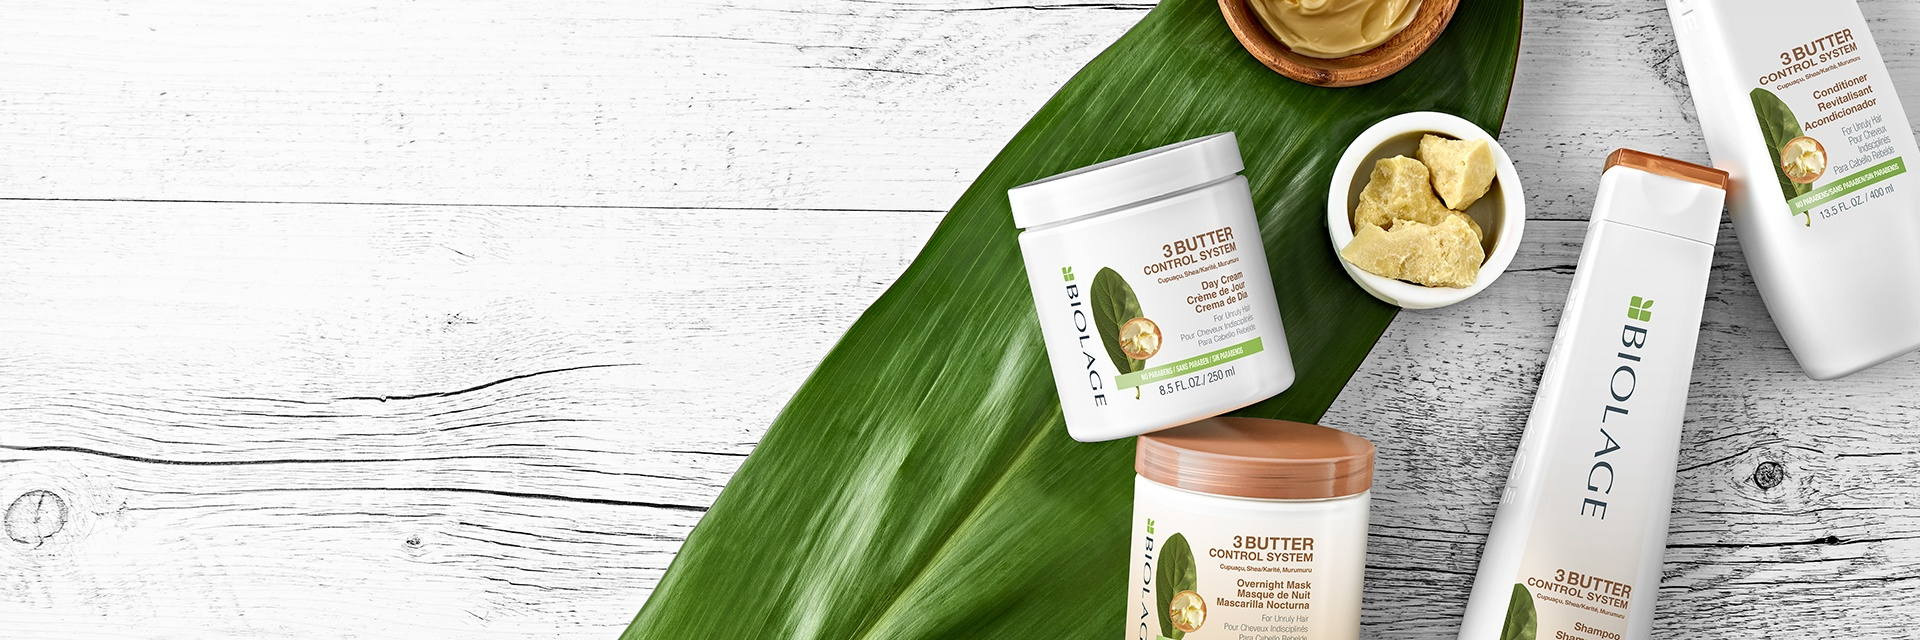 biolage-3butter-hero.jpg